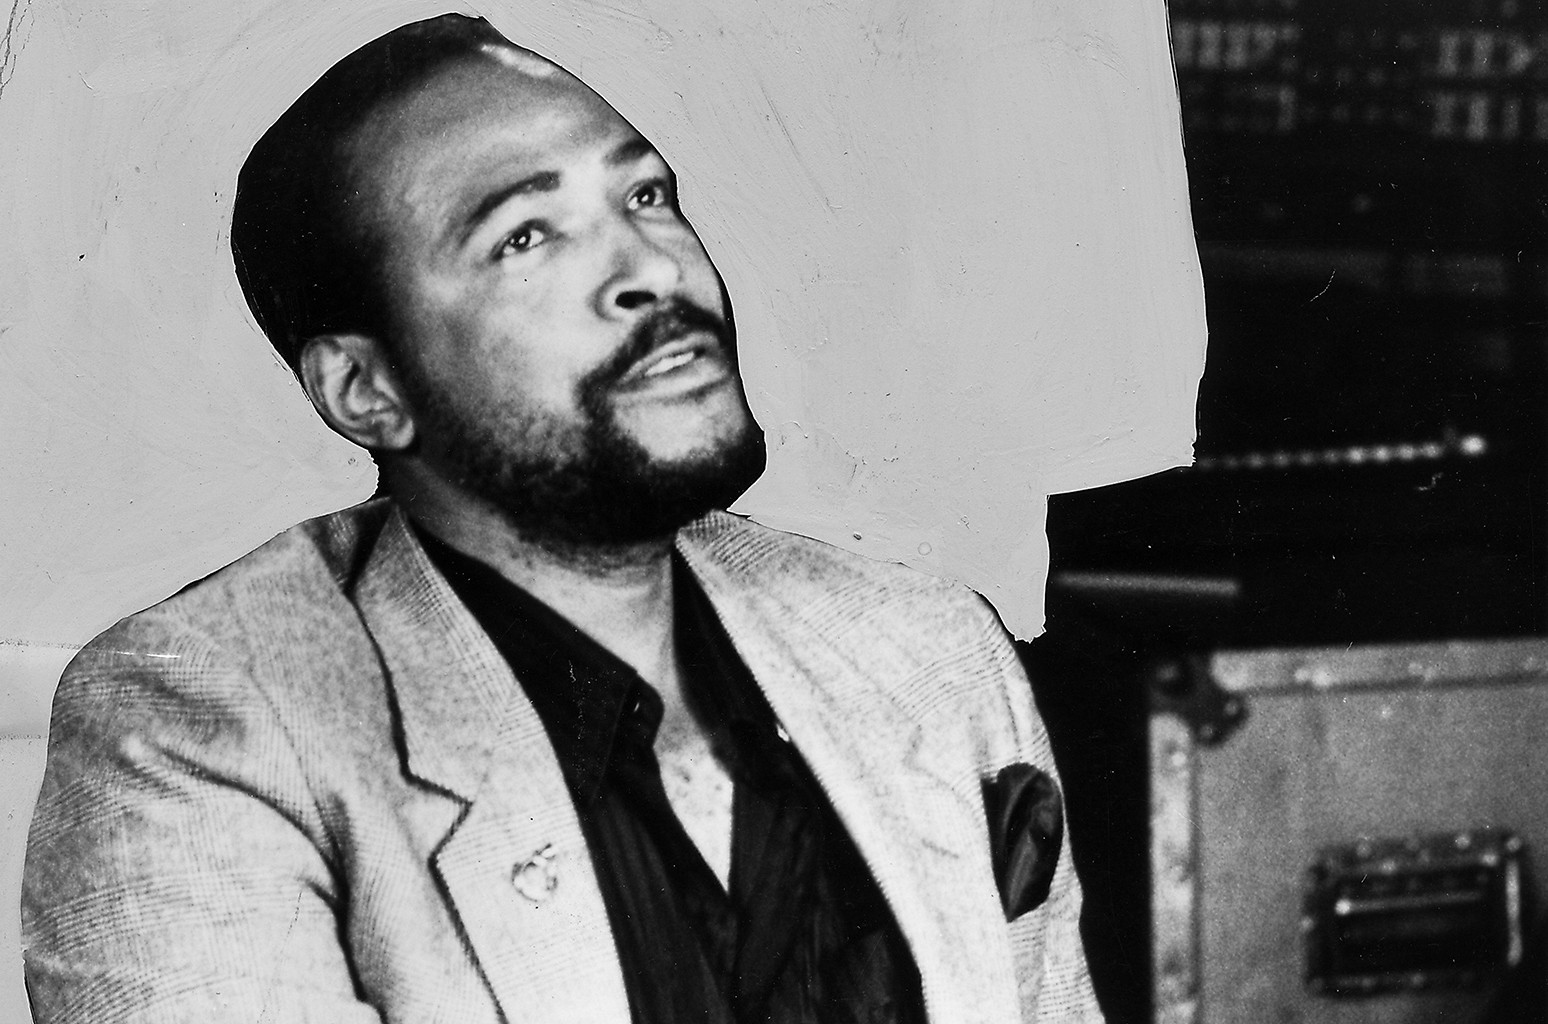 Marvin Gaye photographed in 1970.